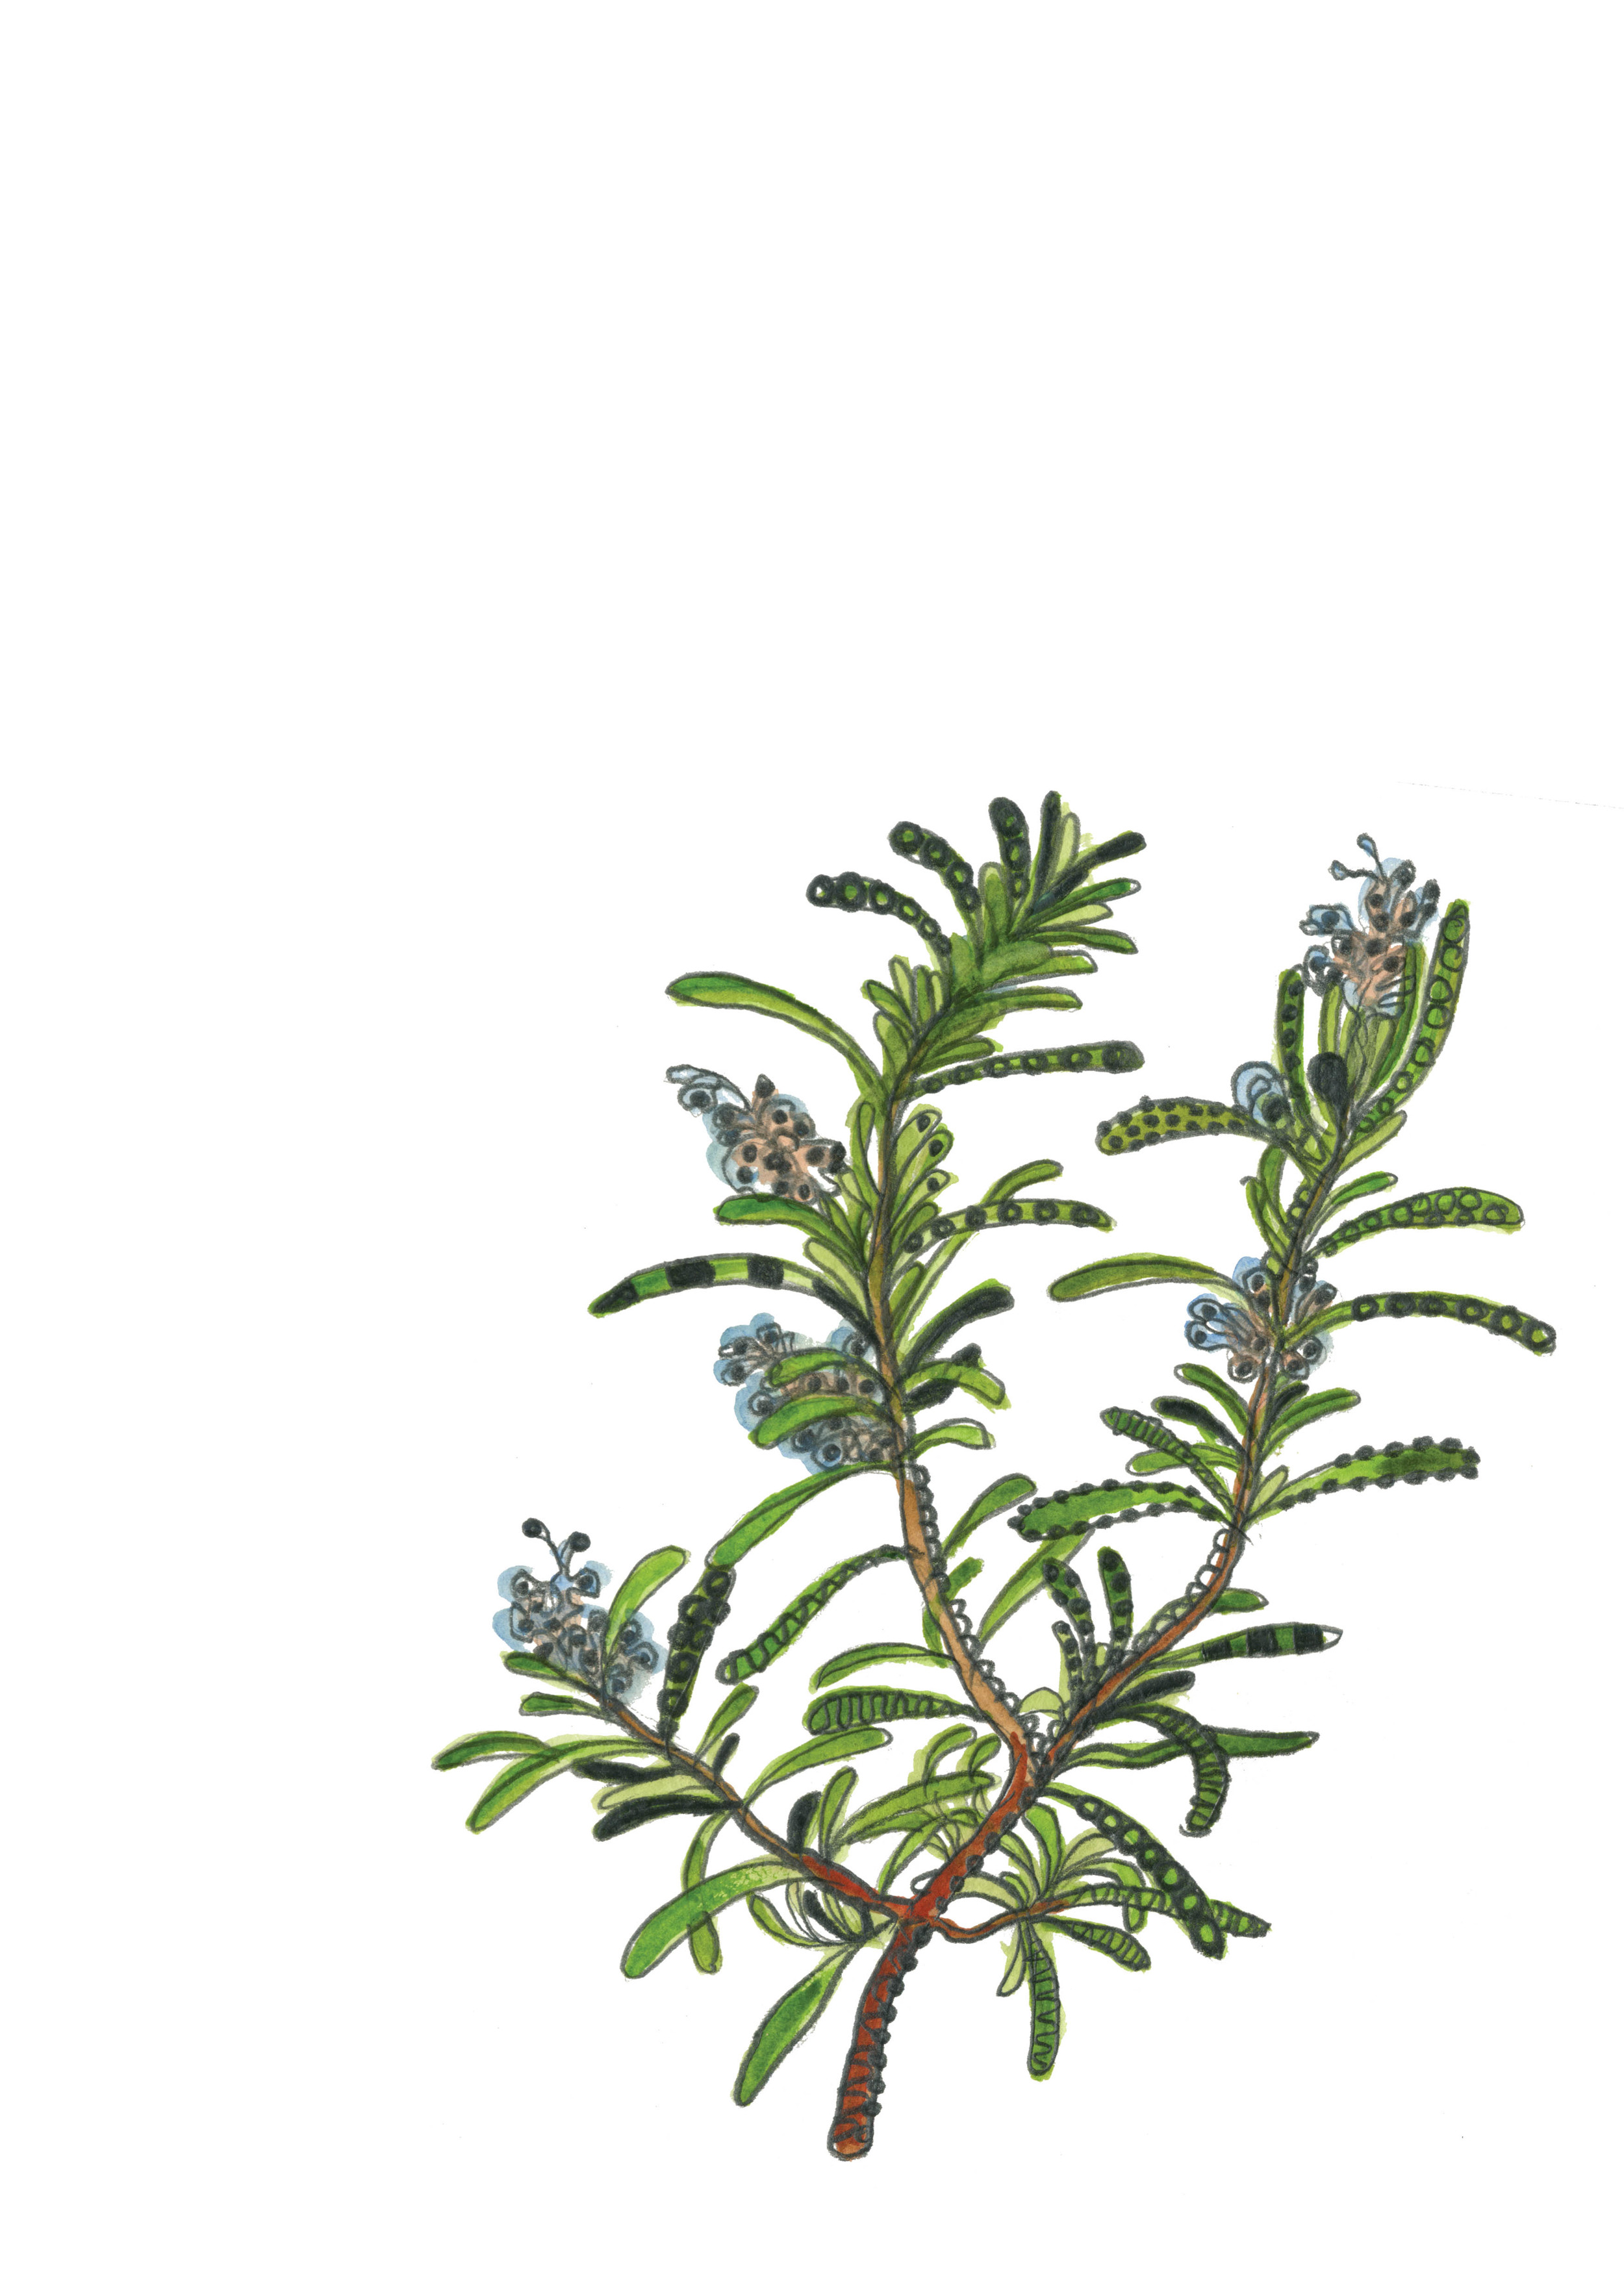 Rosemary by Bridget Melling-Williams